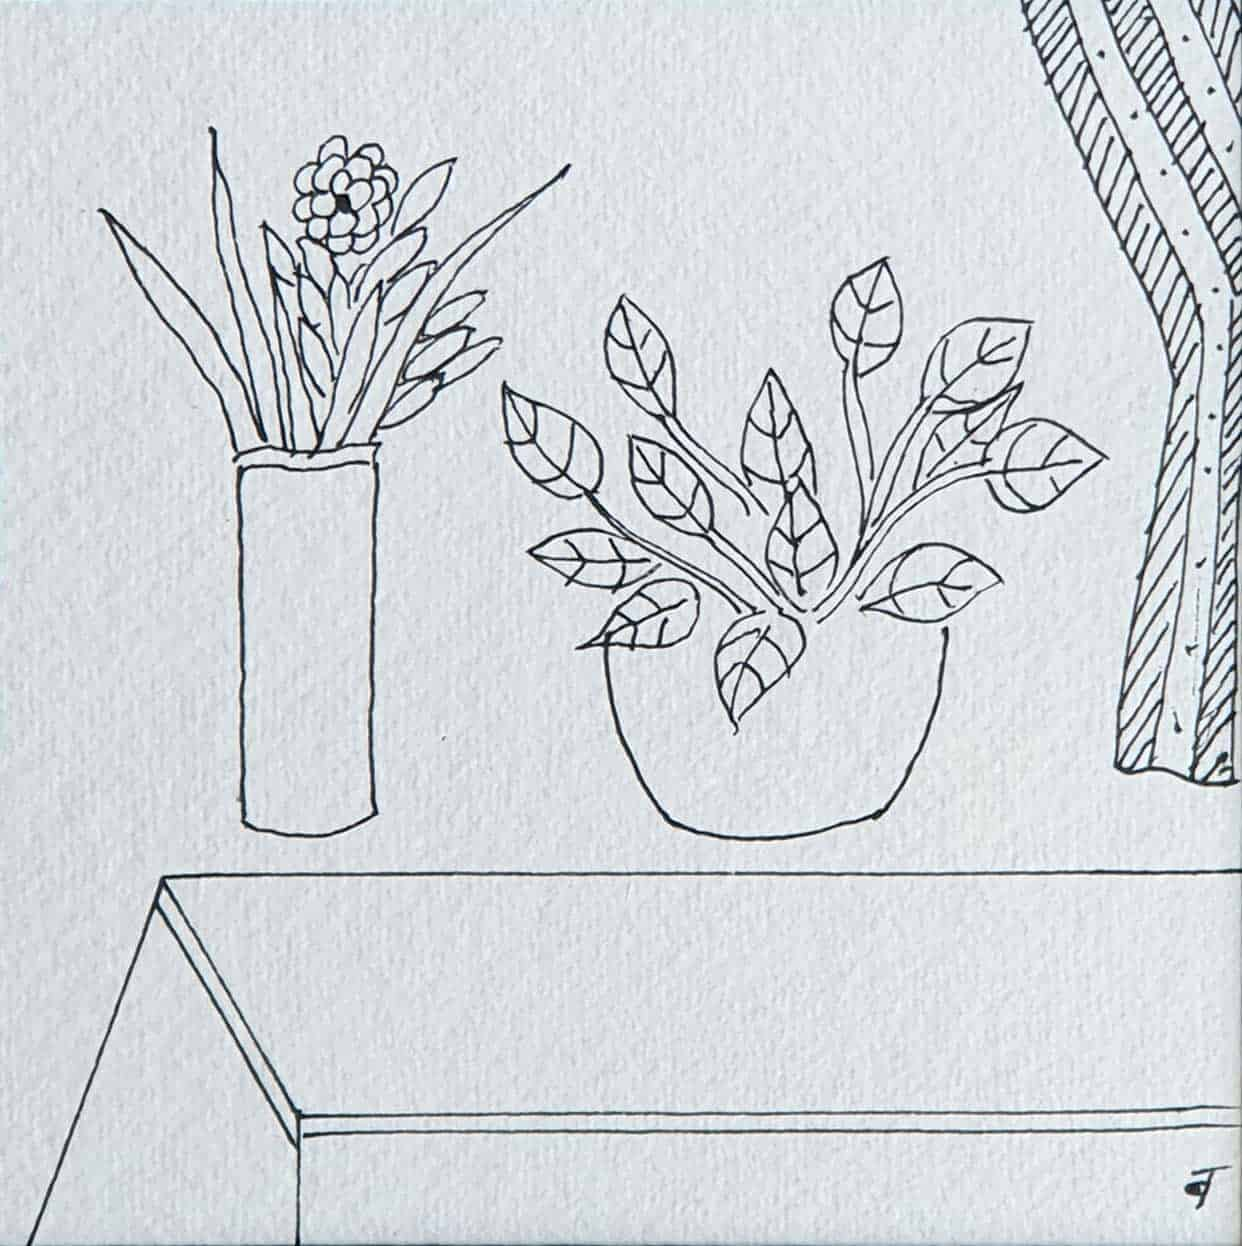 still-life-flower-vase-drawing-on-paper-5×5-inches-2008-min